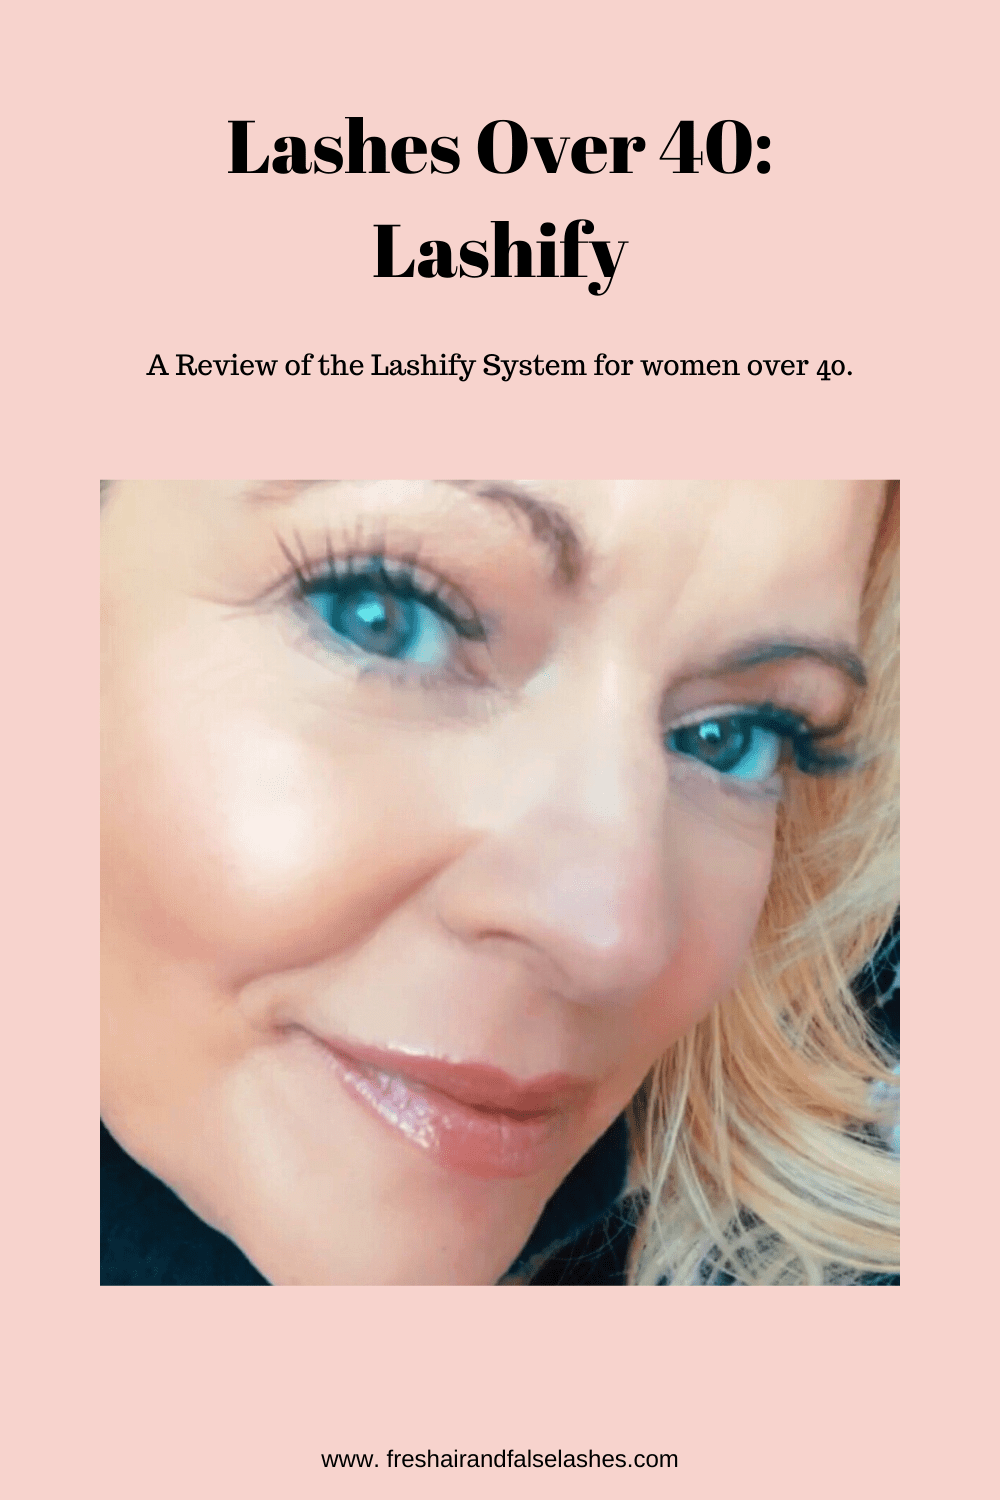 Lashify: A review for women over 40